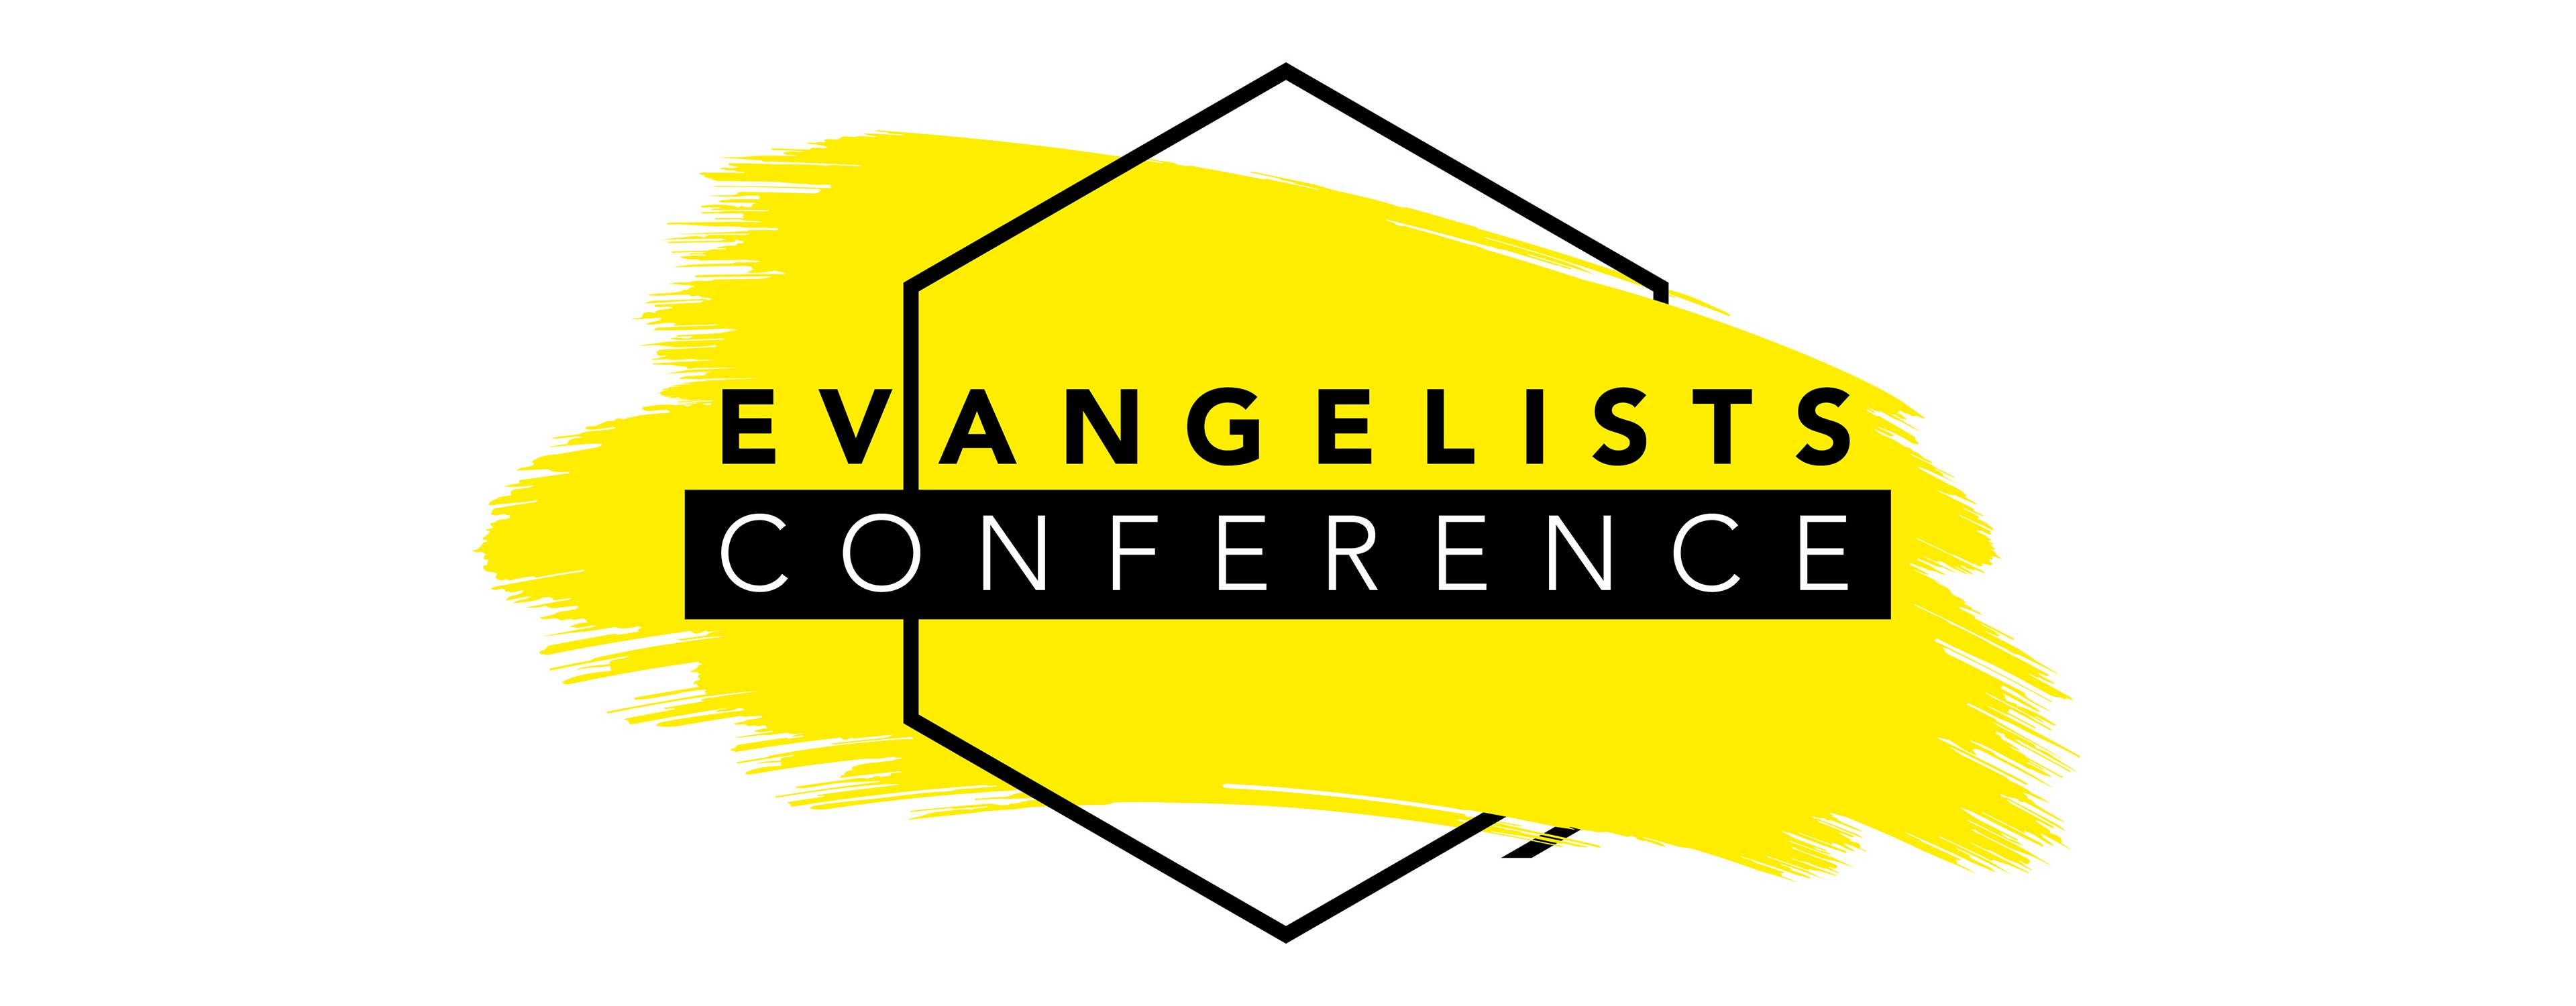 Evangelists' Conference – Are you called to do the work of